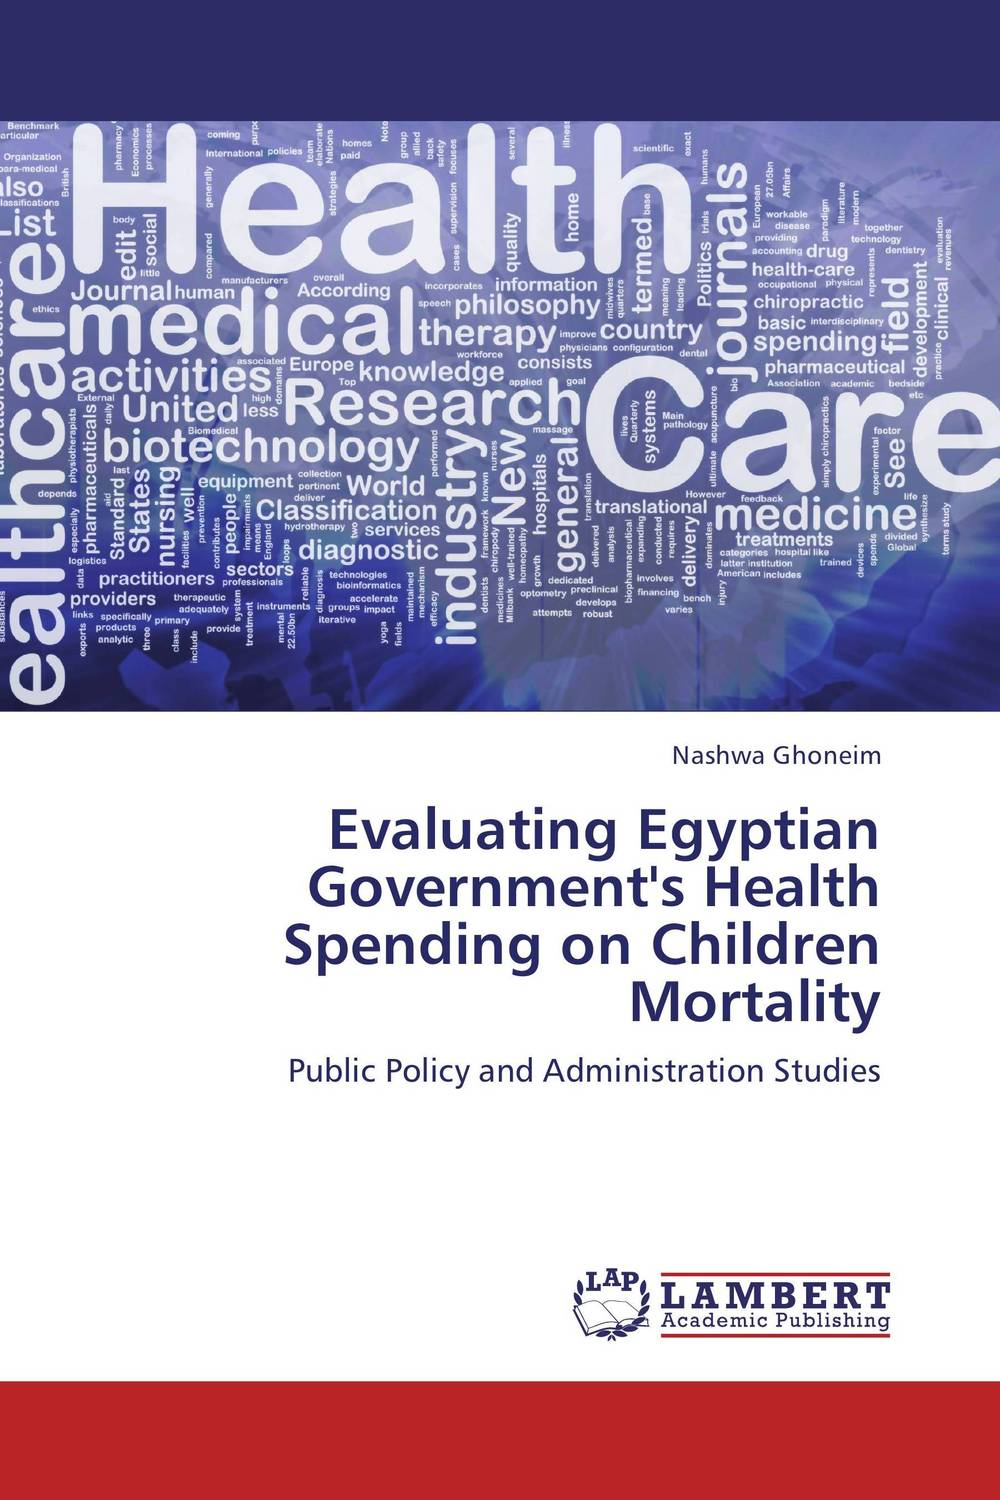 Evaluating Egyptian Government's Health Spending on Children Mortality seeing things as they are